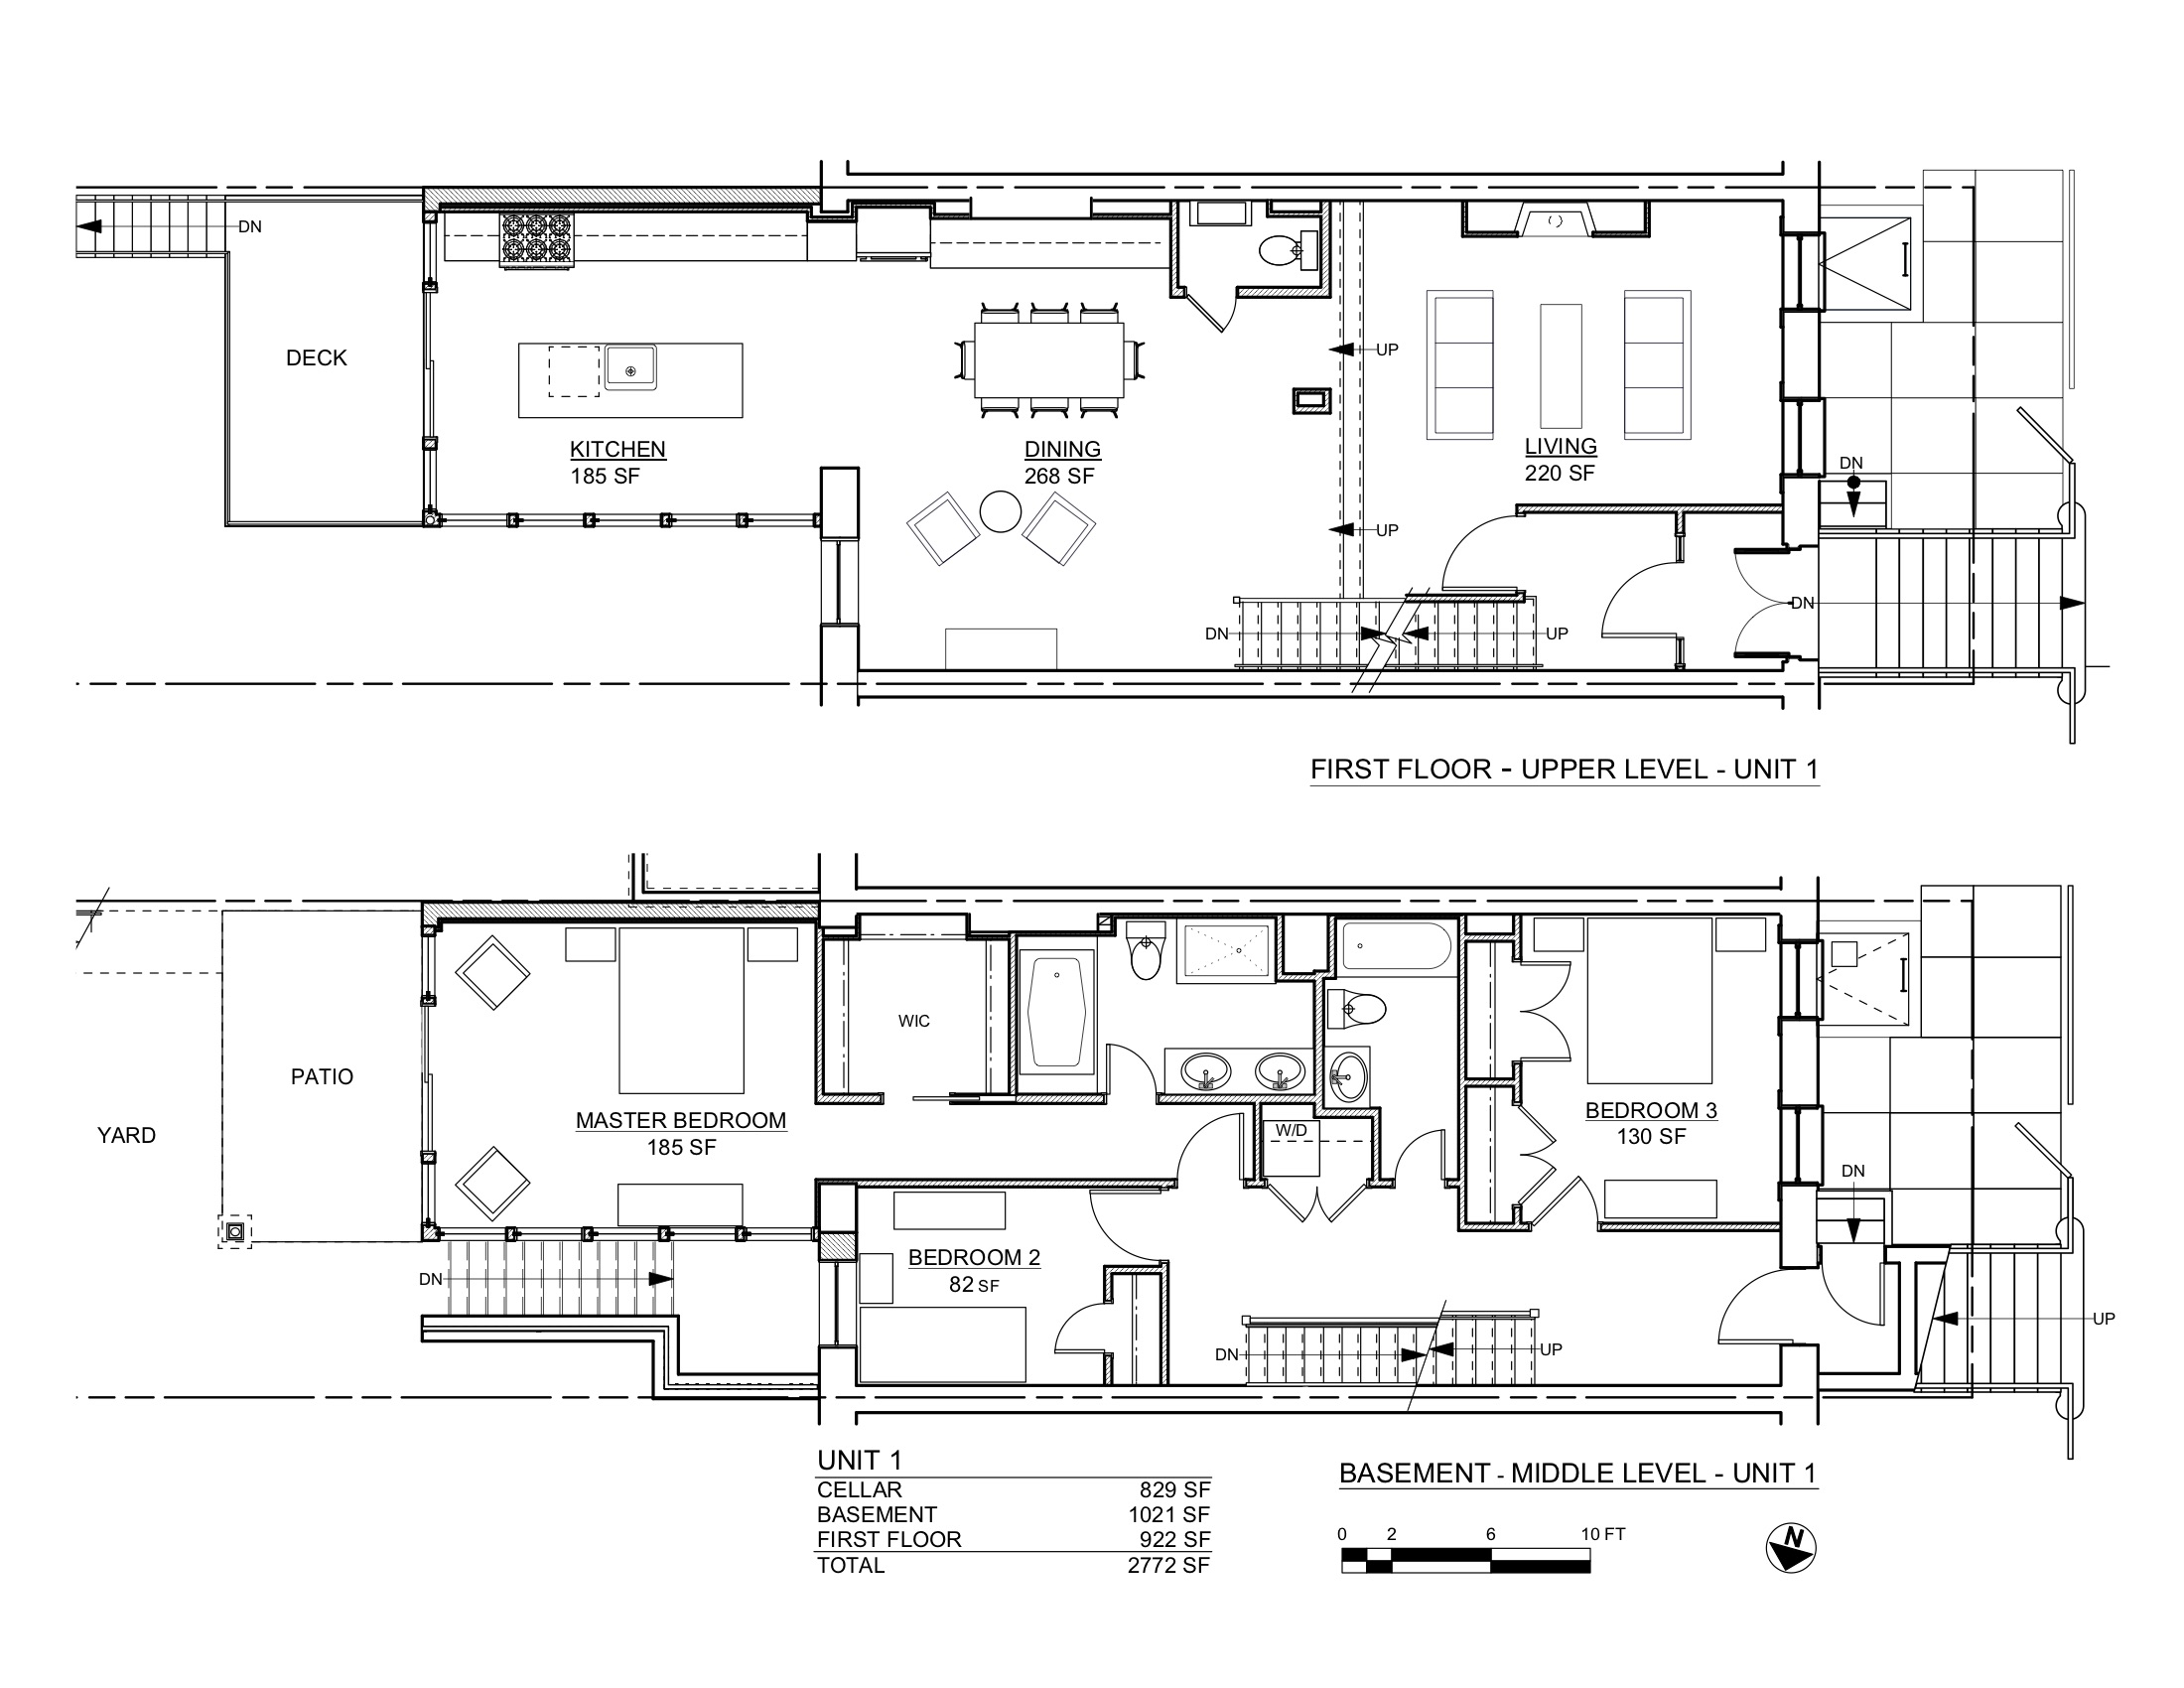 ST JAMES PLANS BASEMENT & 1ST FLOORS